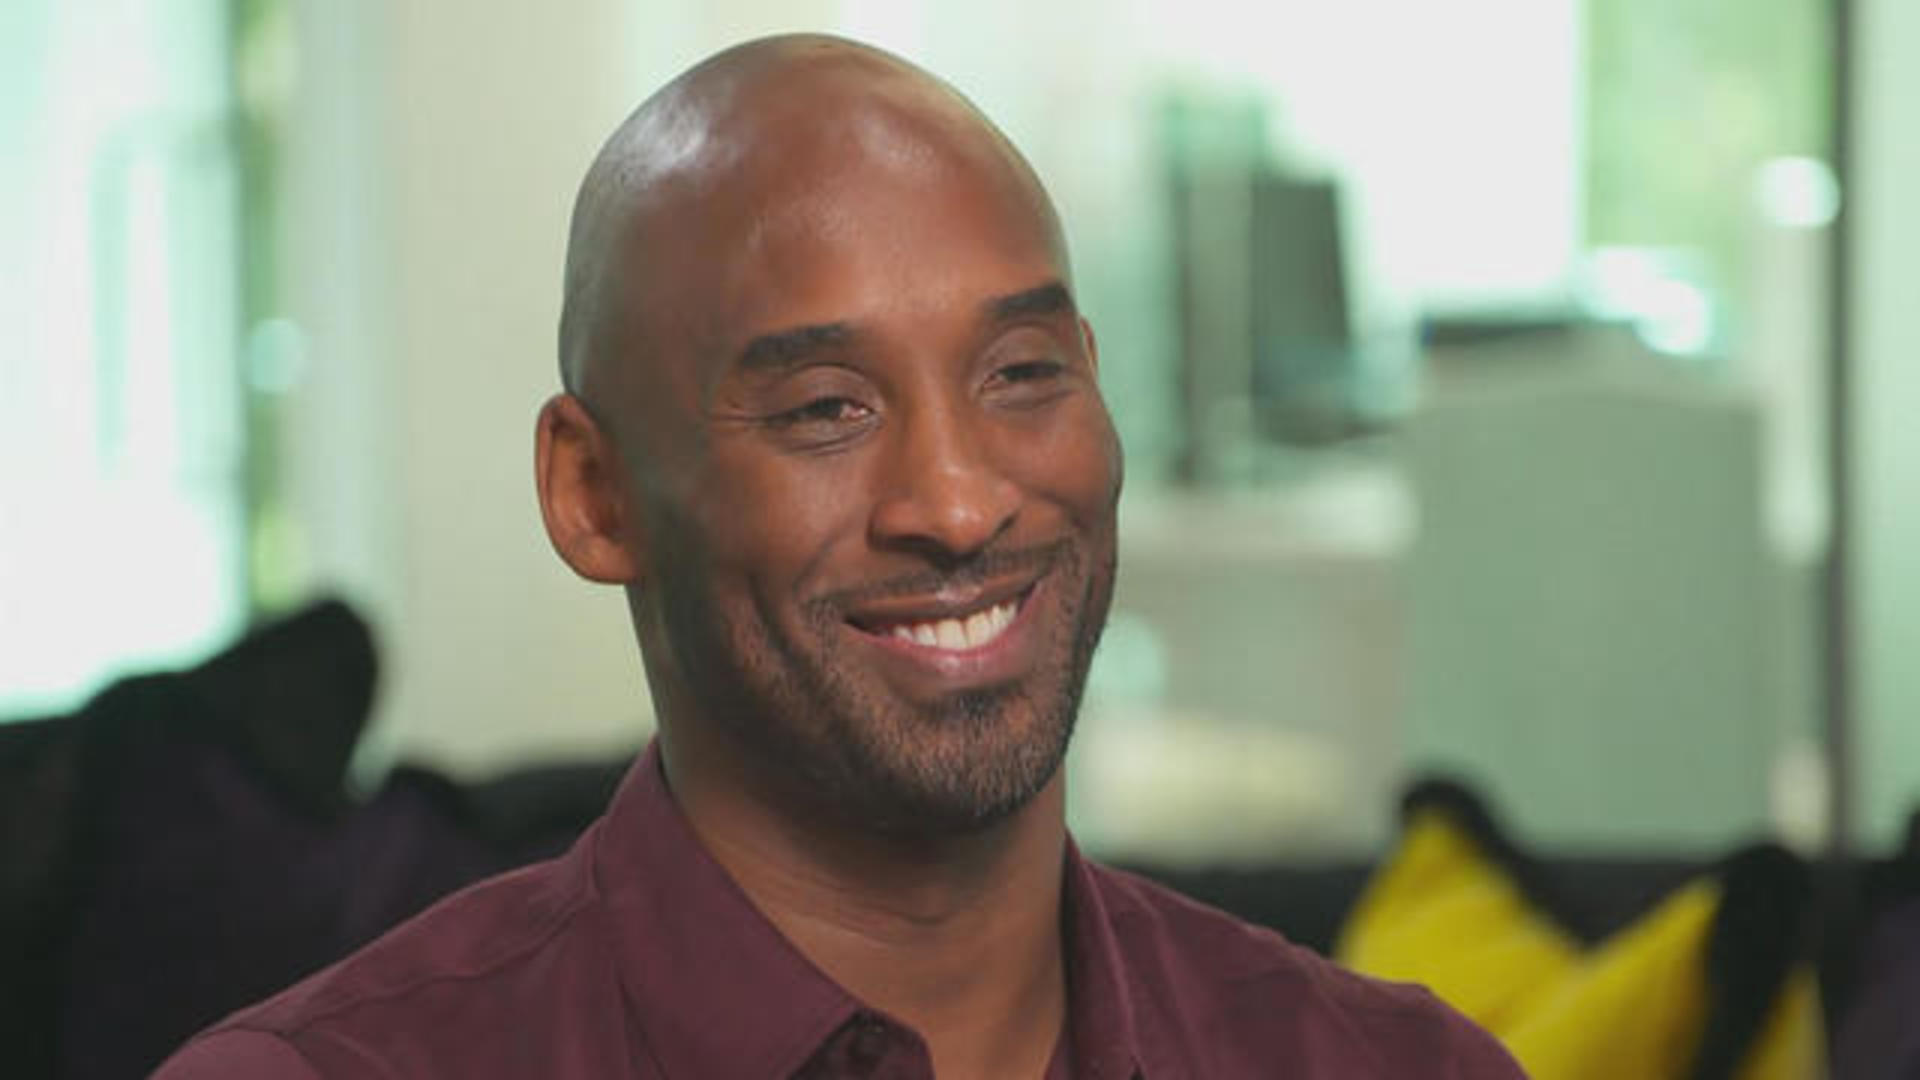 Kobe Bryant Wants To Be Known As A Storyteller Cbs News